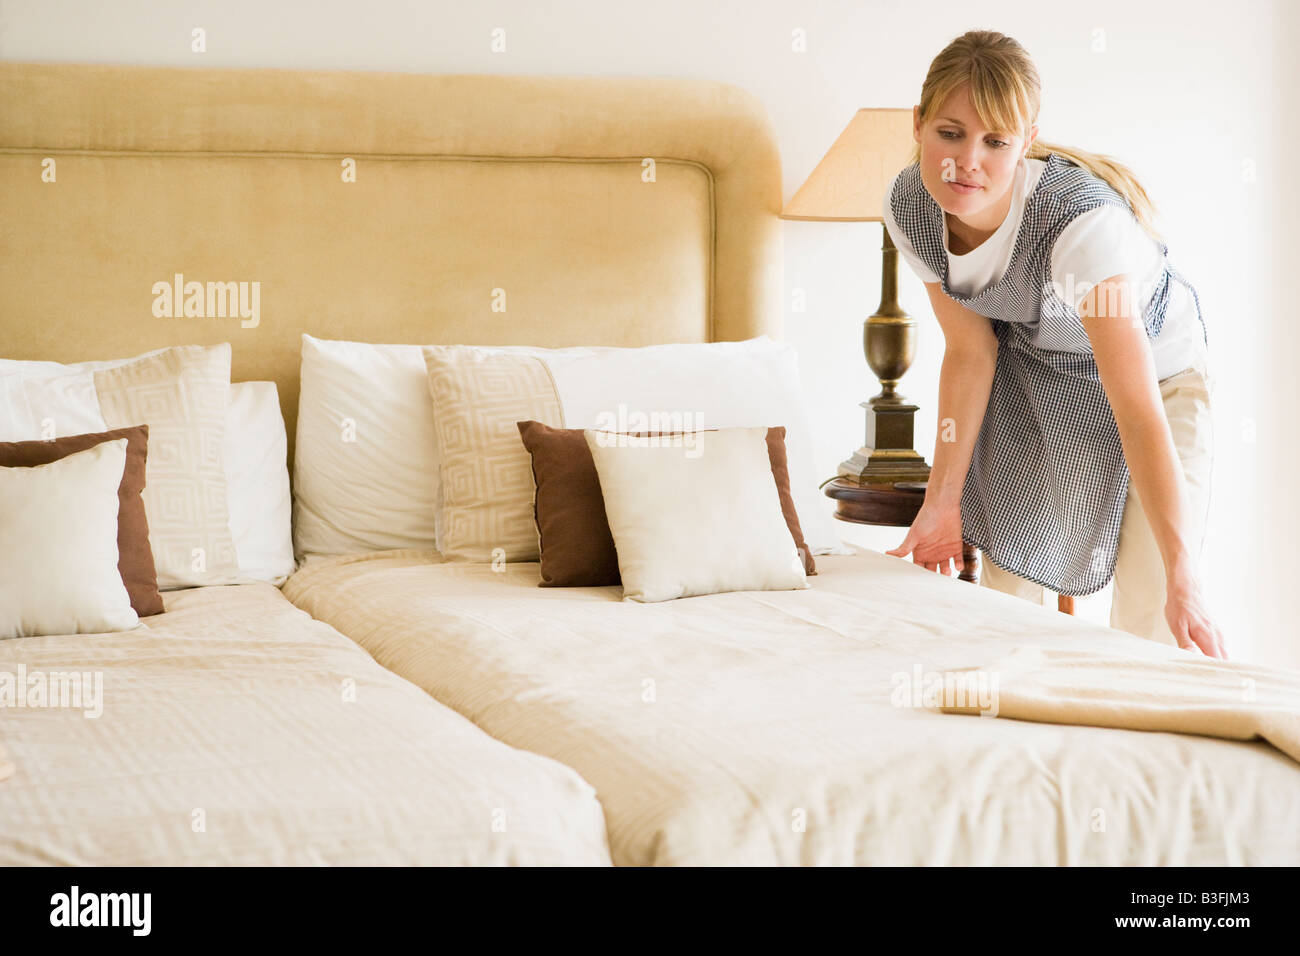 chambermaid stockfotos chambermaid bilder alamy. Black Bedroom Furniture Sets. Home Design Ideas